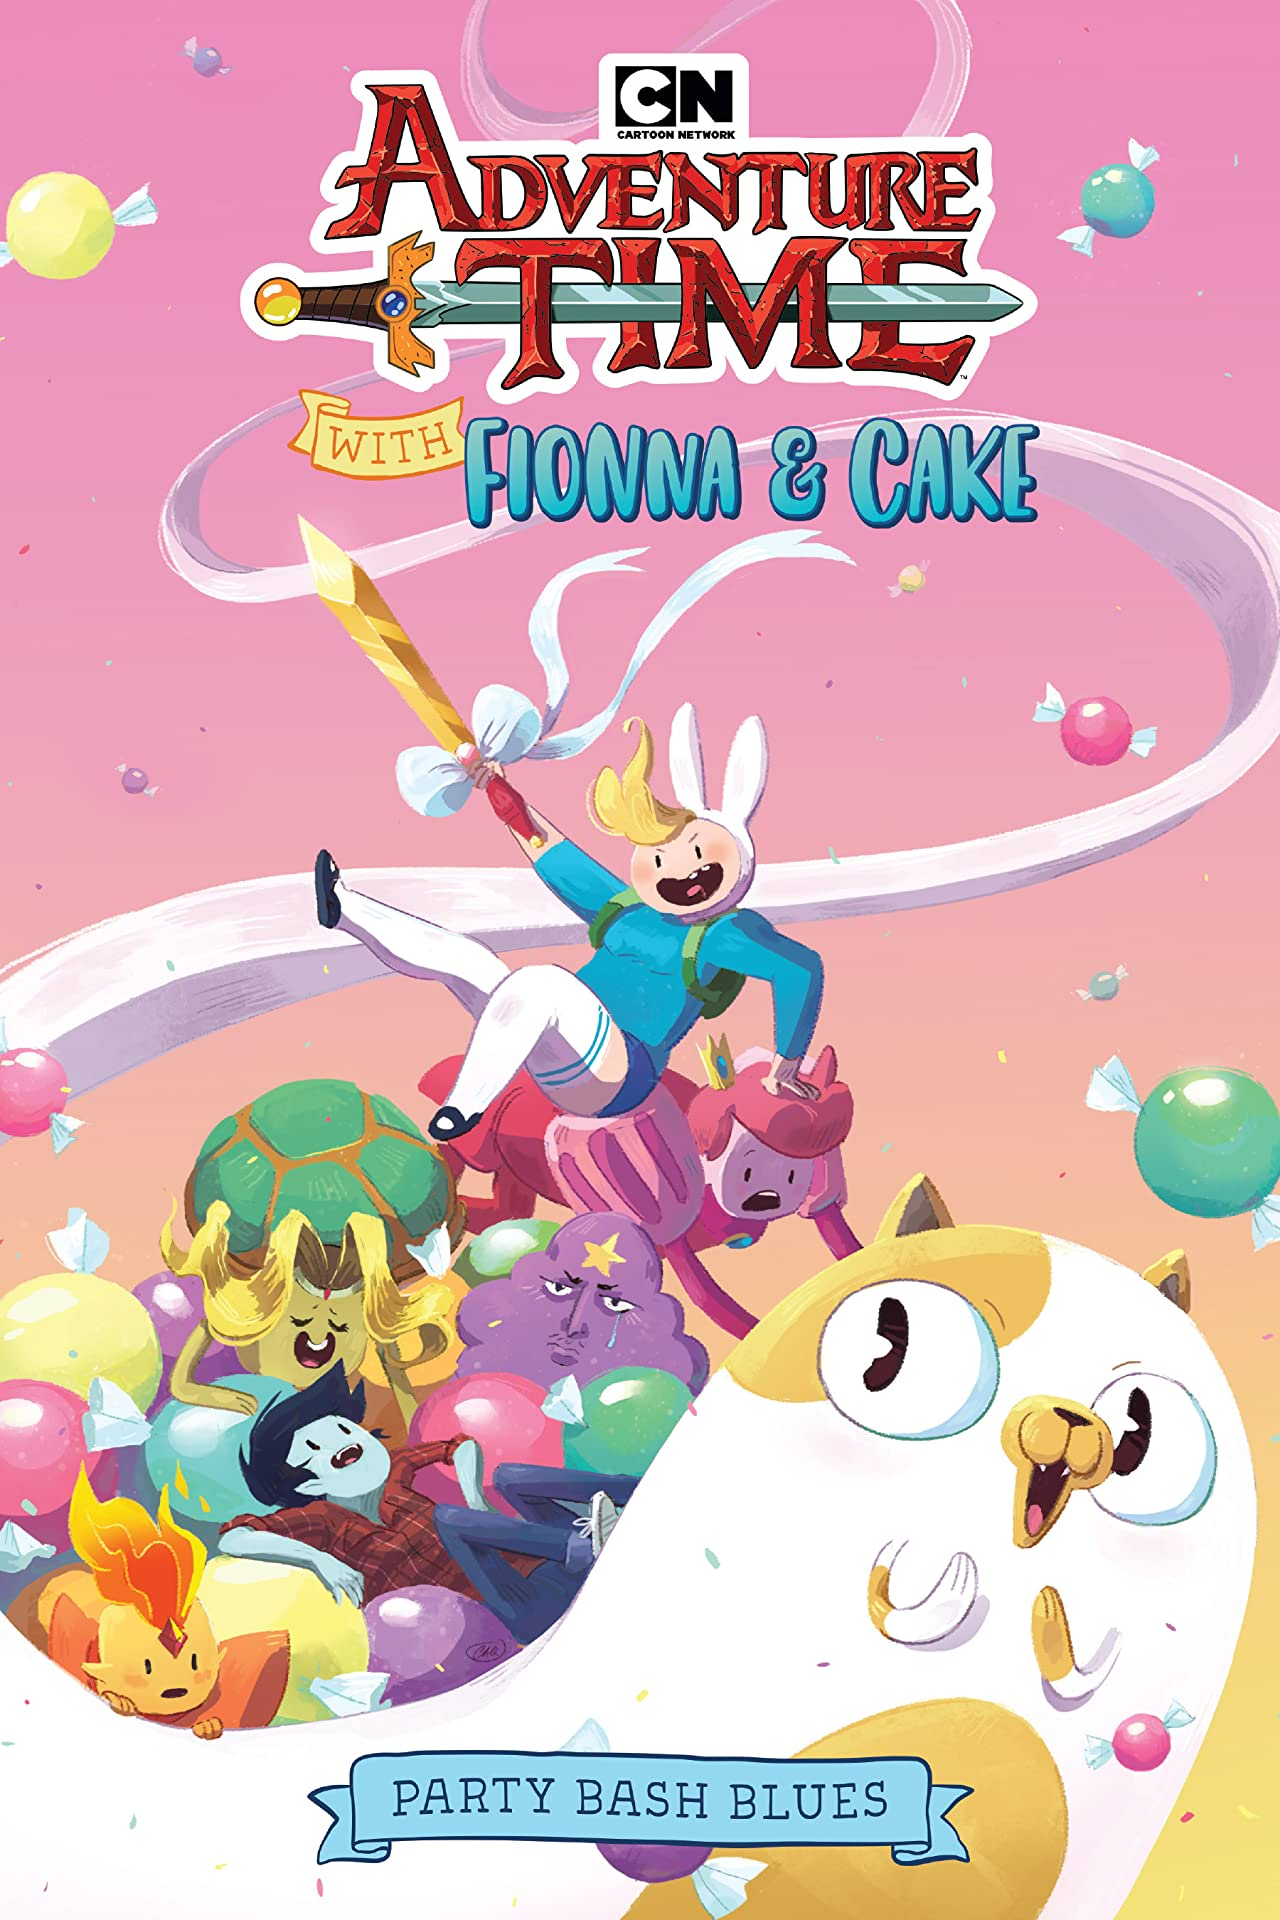 Adventure Time with Fionna & Cake: Party Bash Blues